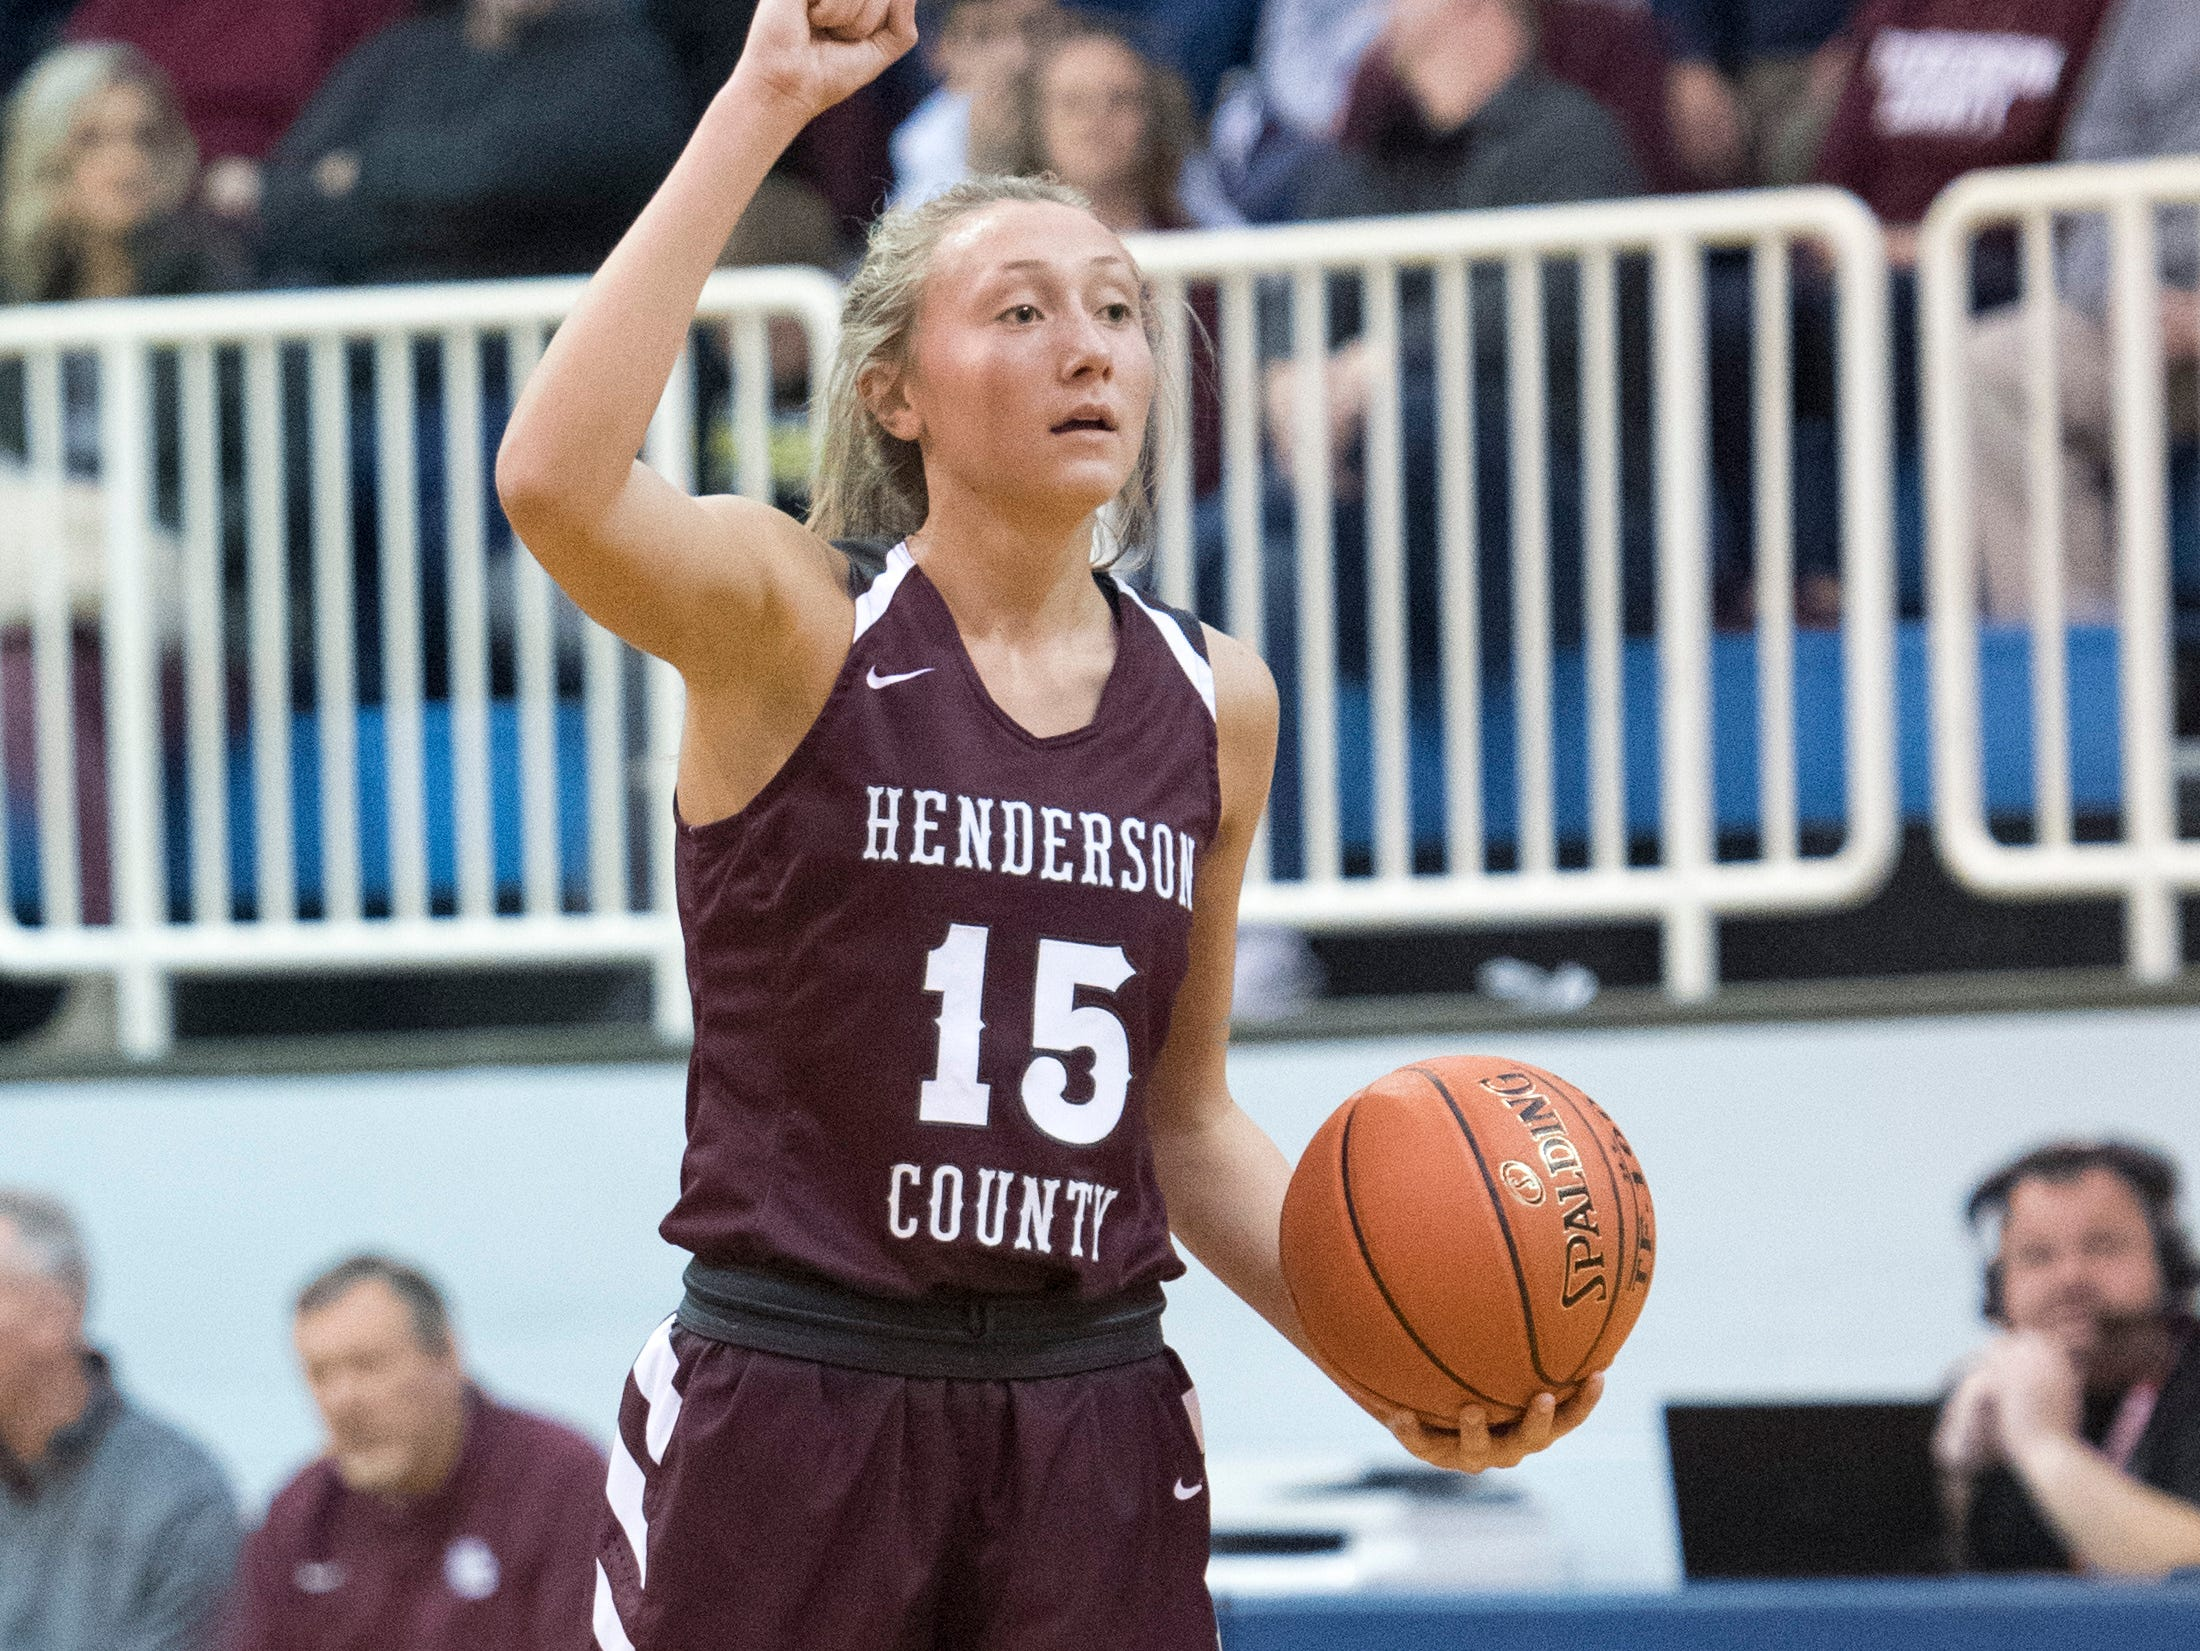 Henderson County's Alyssa Dickson (15) calls a play during the Trigg County Lady Wildcats vs Henderson County Lady Colonels game of the 2nd Region Tournament at Crittenden County's Rocket Arena Wednesday, Feb. 27, 2019.